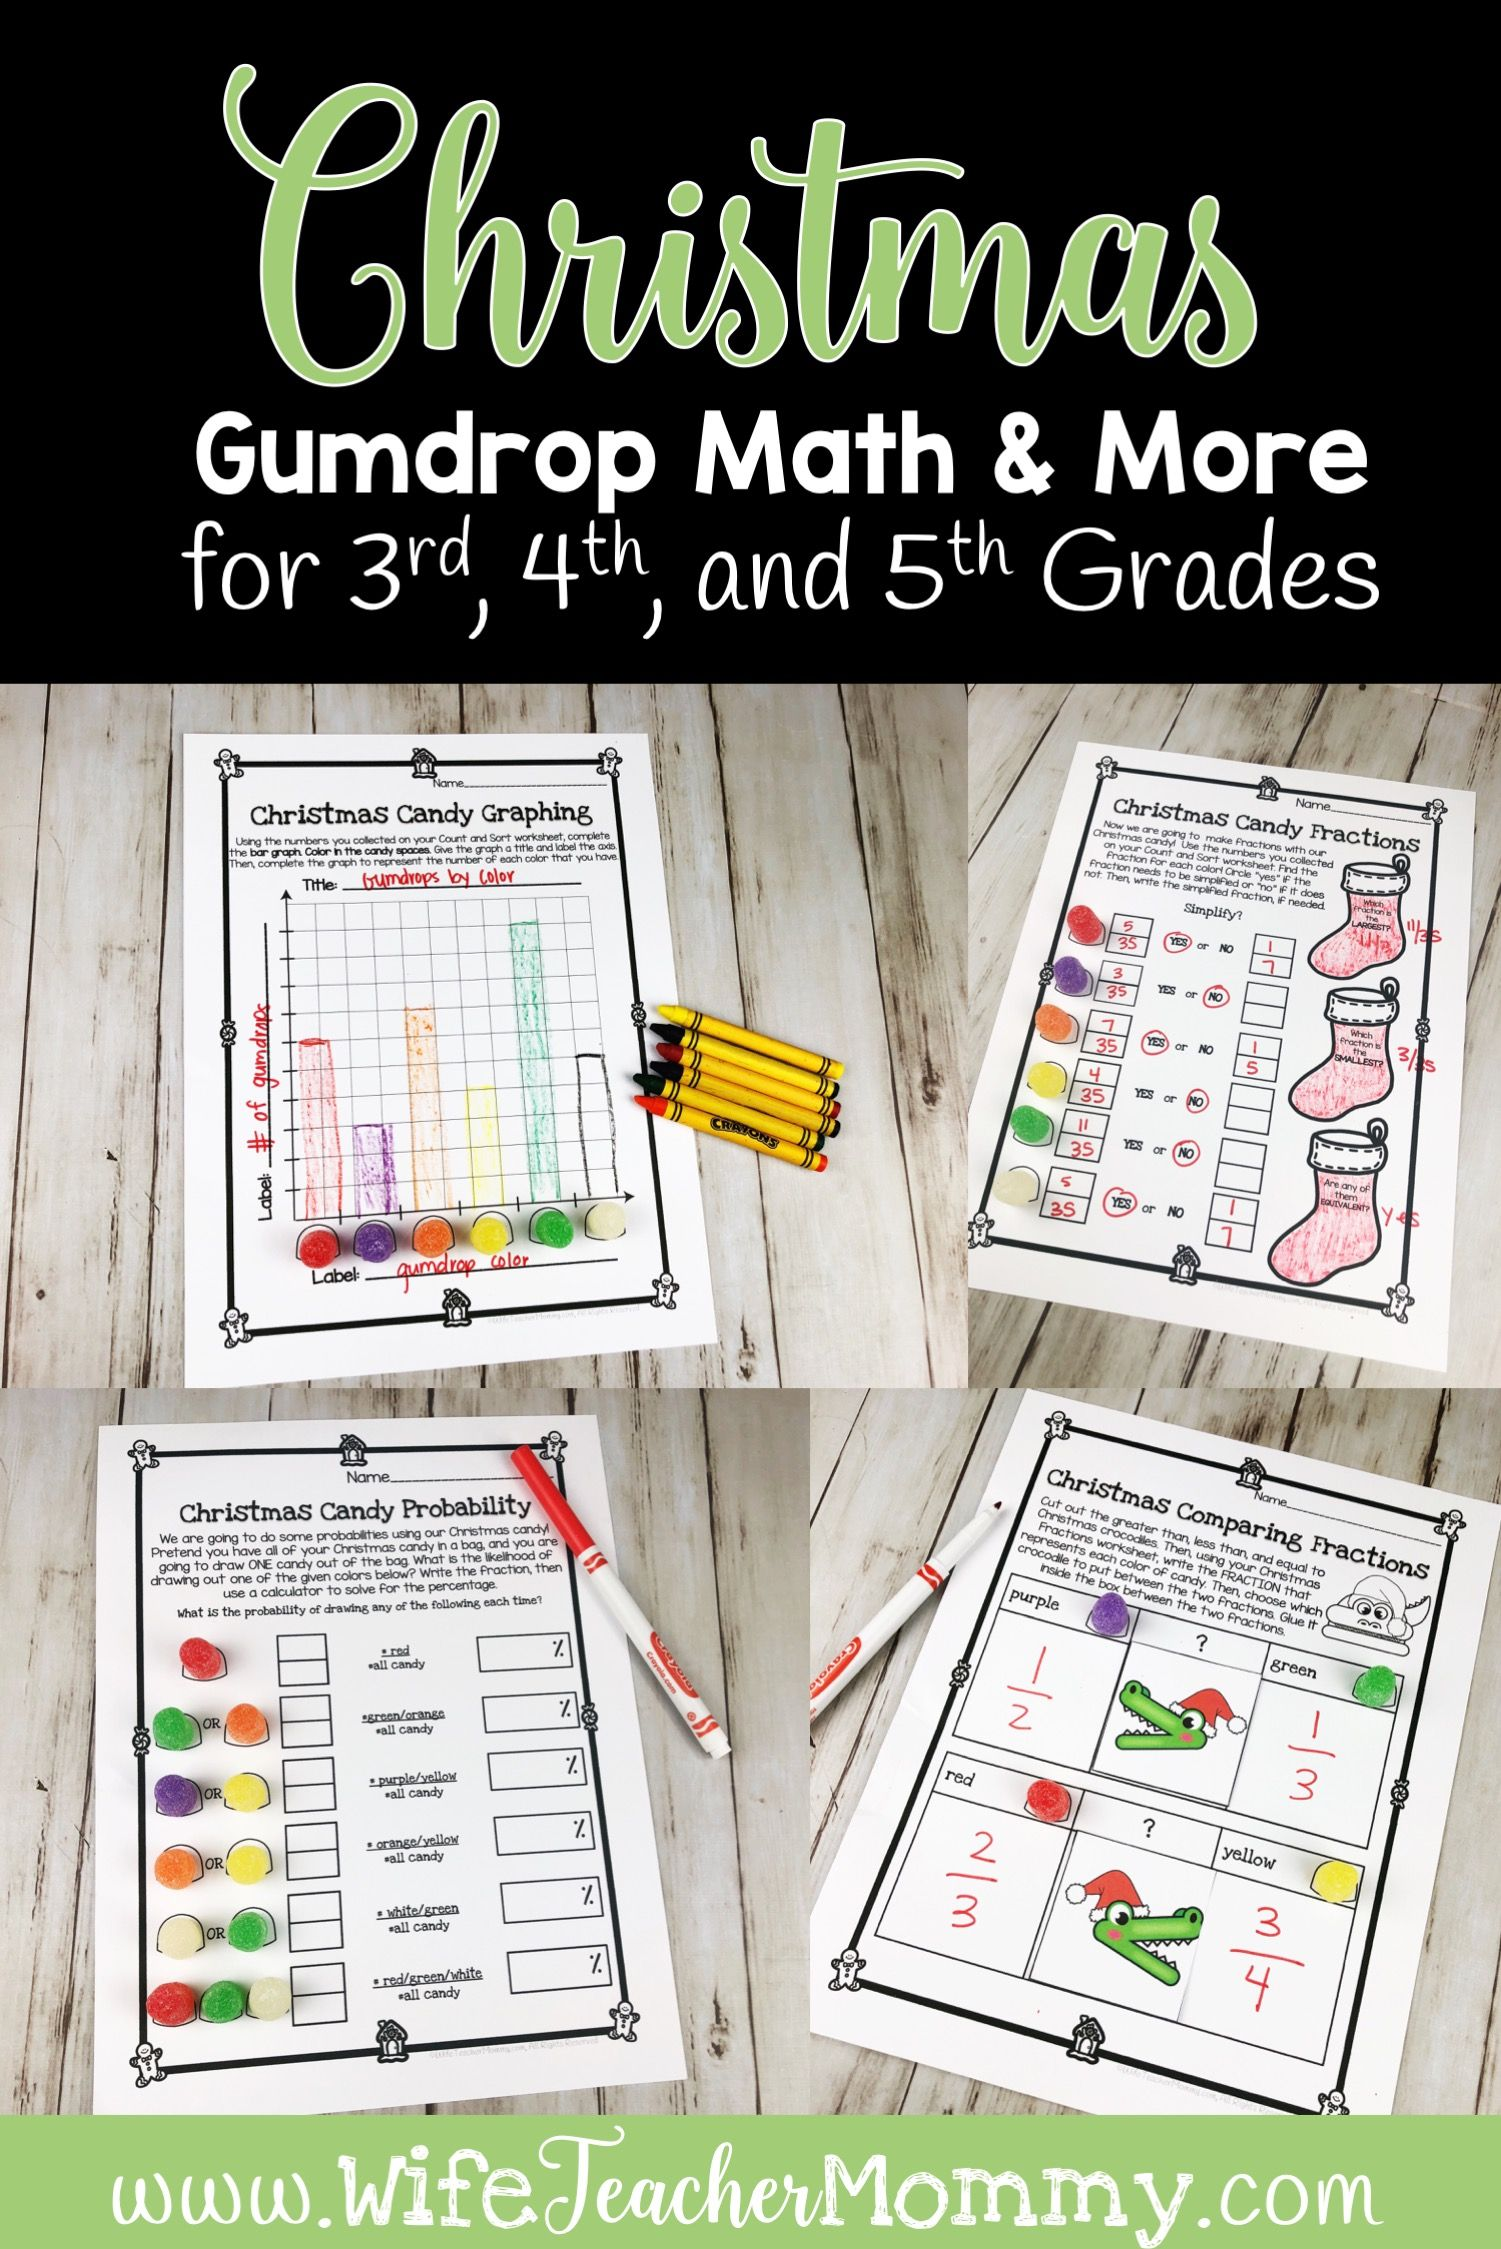 These Christmas Gumdrop Math Activities Are Perfect For